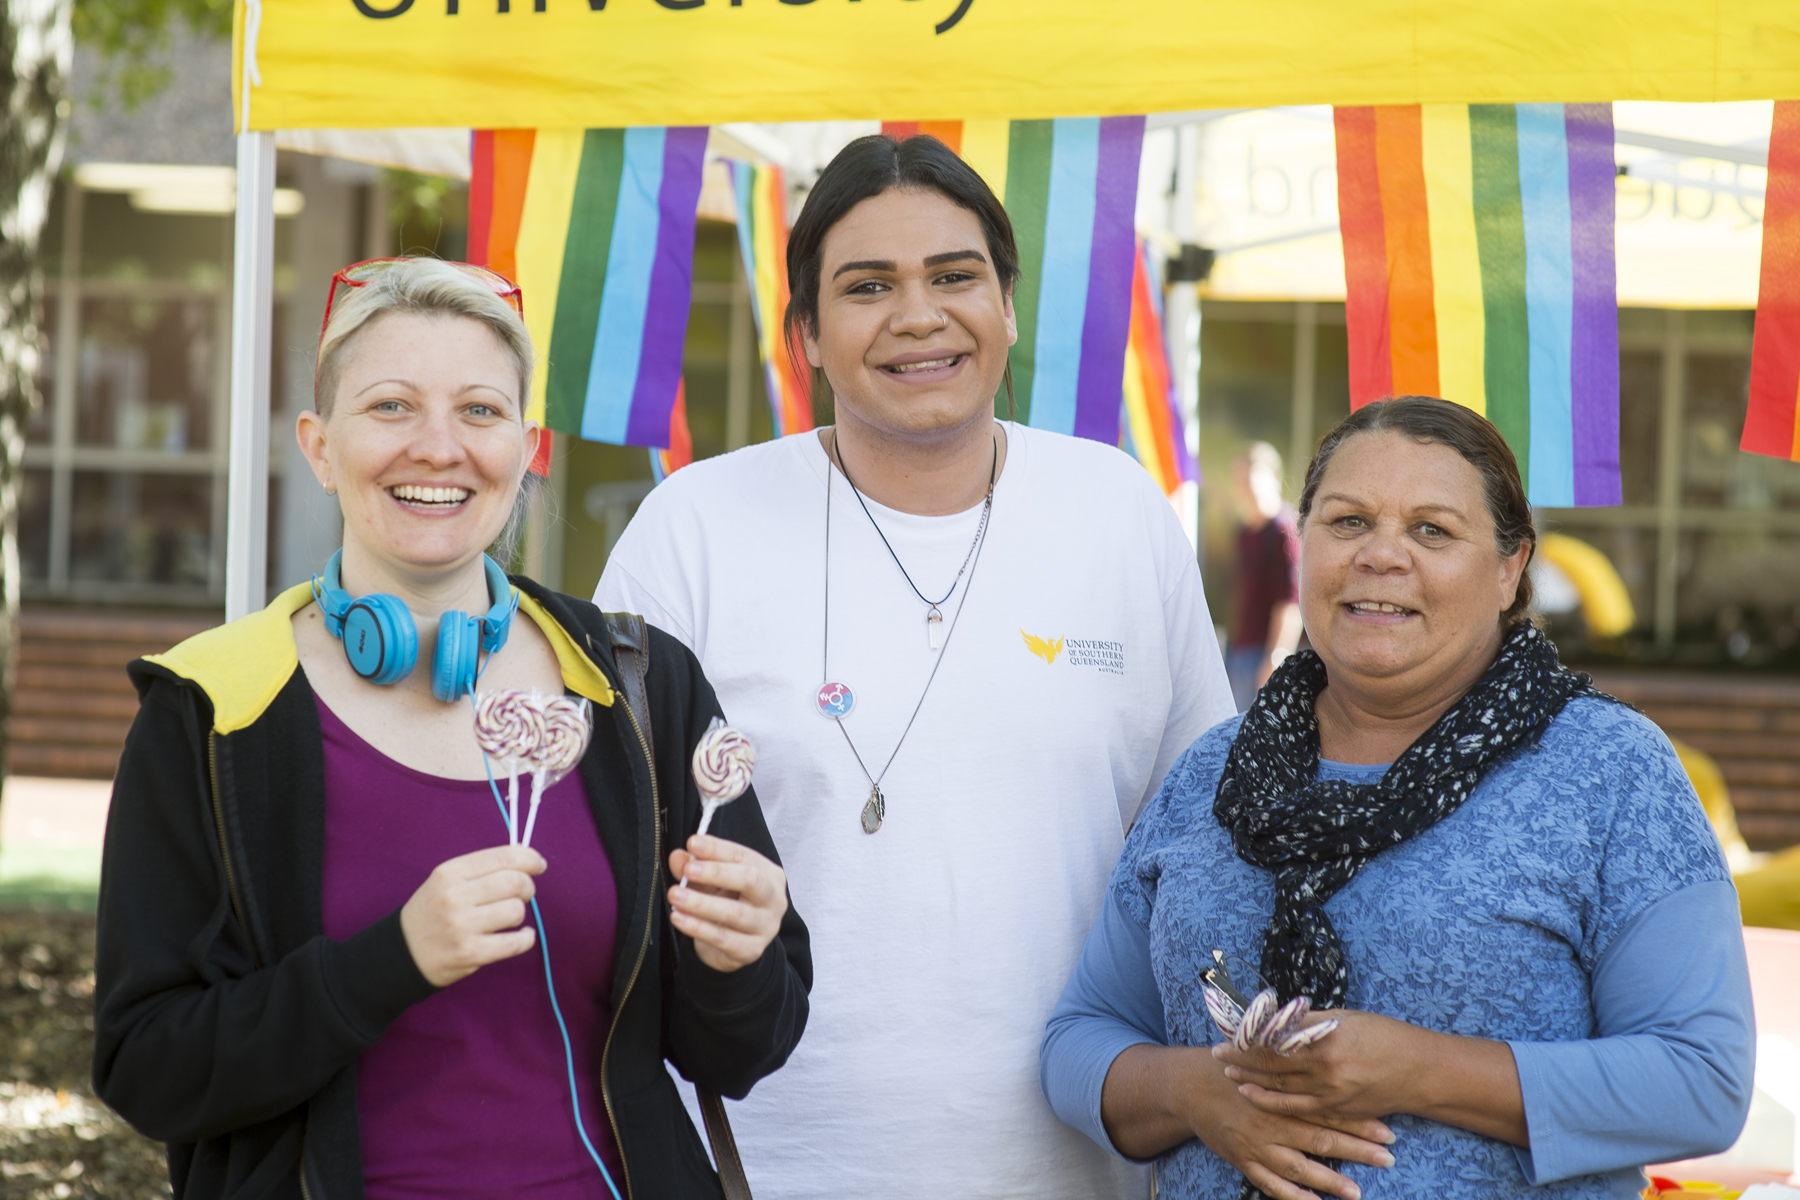 idahot-celebrations-usq-welcome